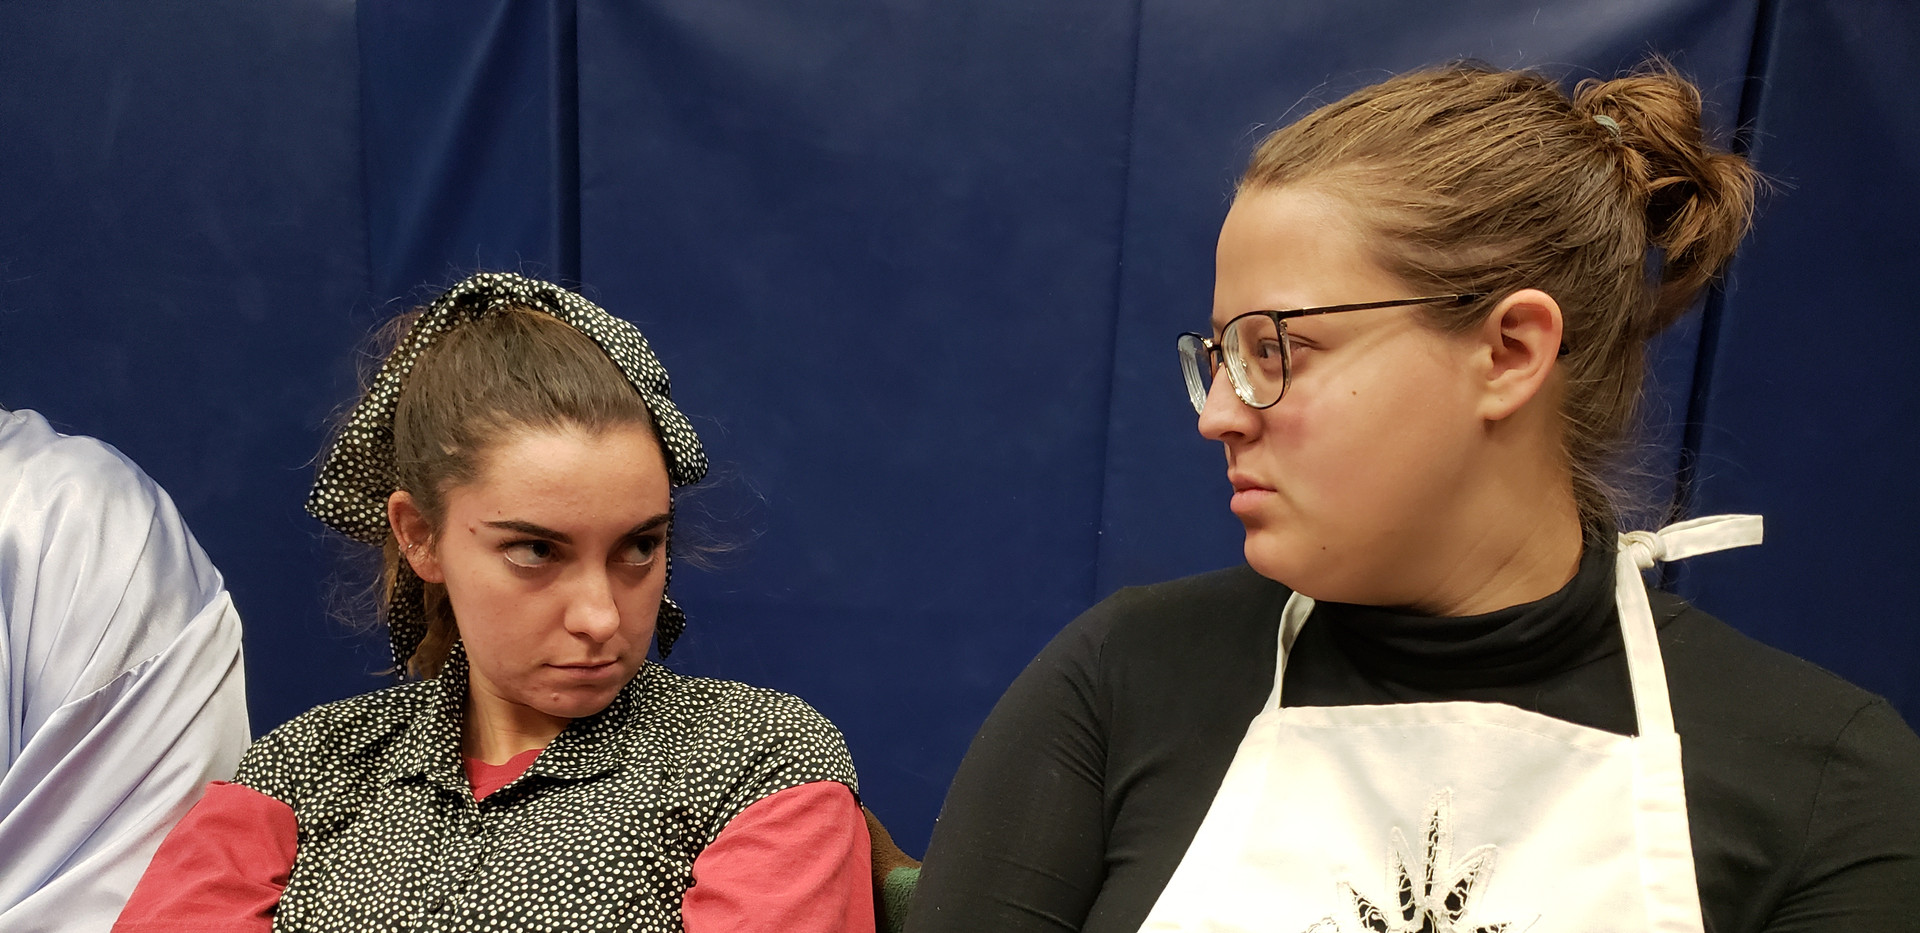 Bitter enemies. Sarah Hogan as Mary and Emma Holland as Agatha in The Children's Hour by Lillian Hellman.